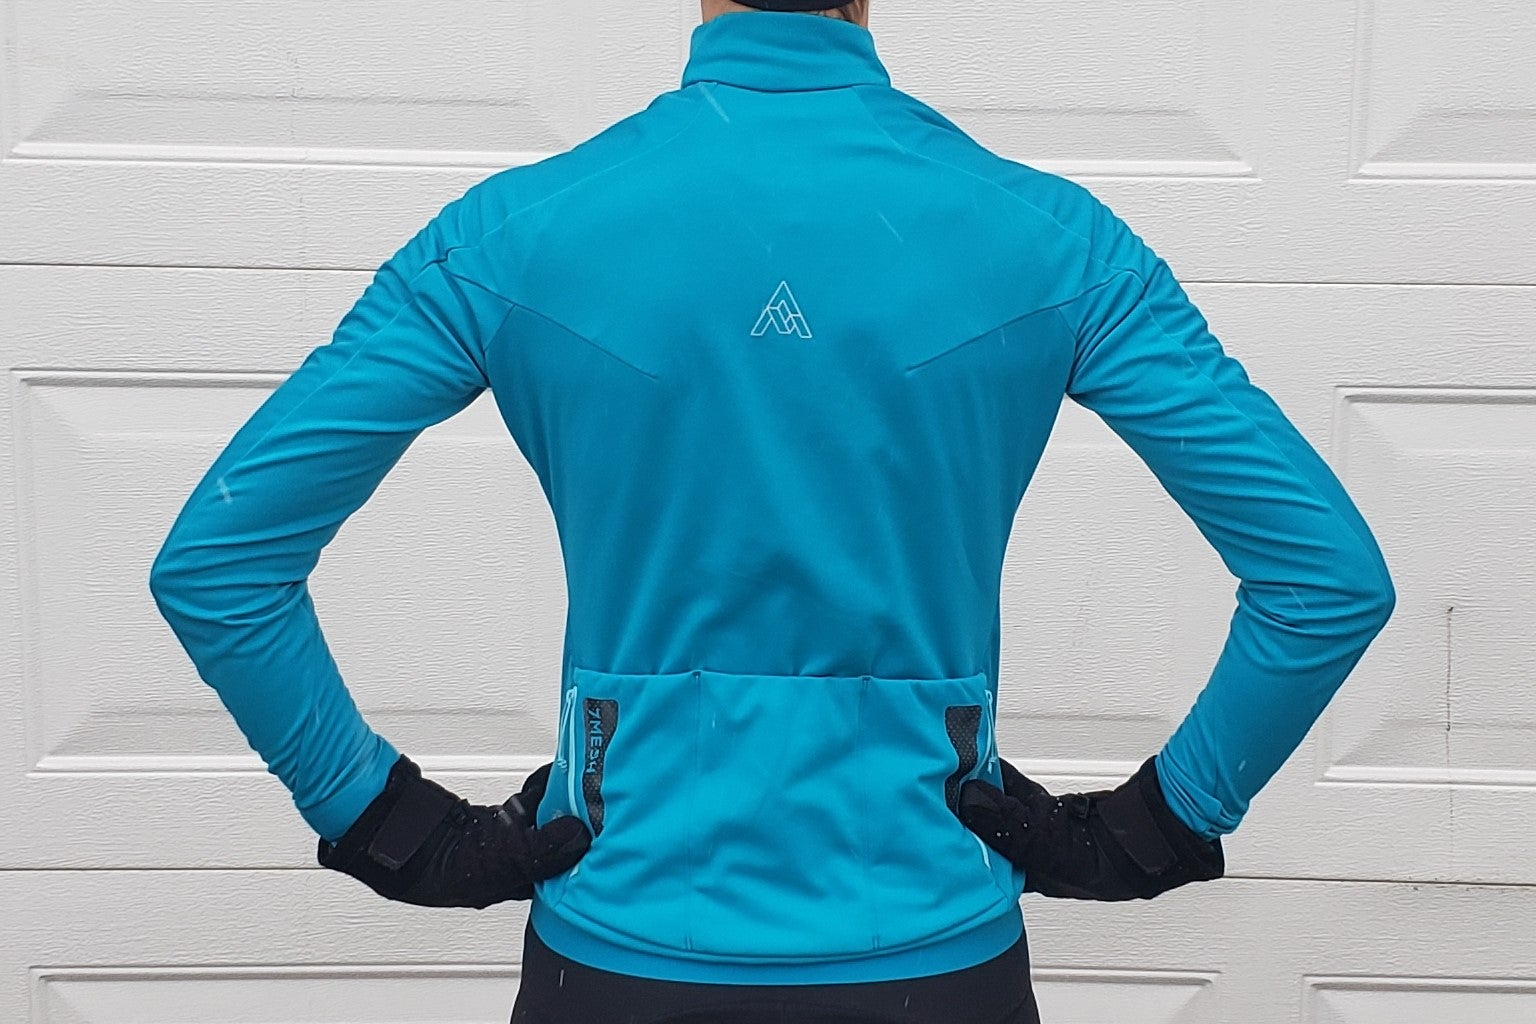 7Mesh Synergy Women/'s Long Sleeve Jersey